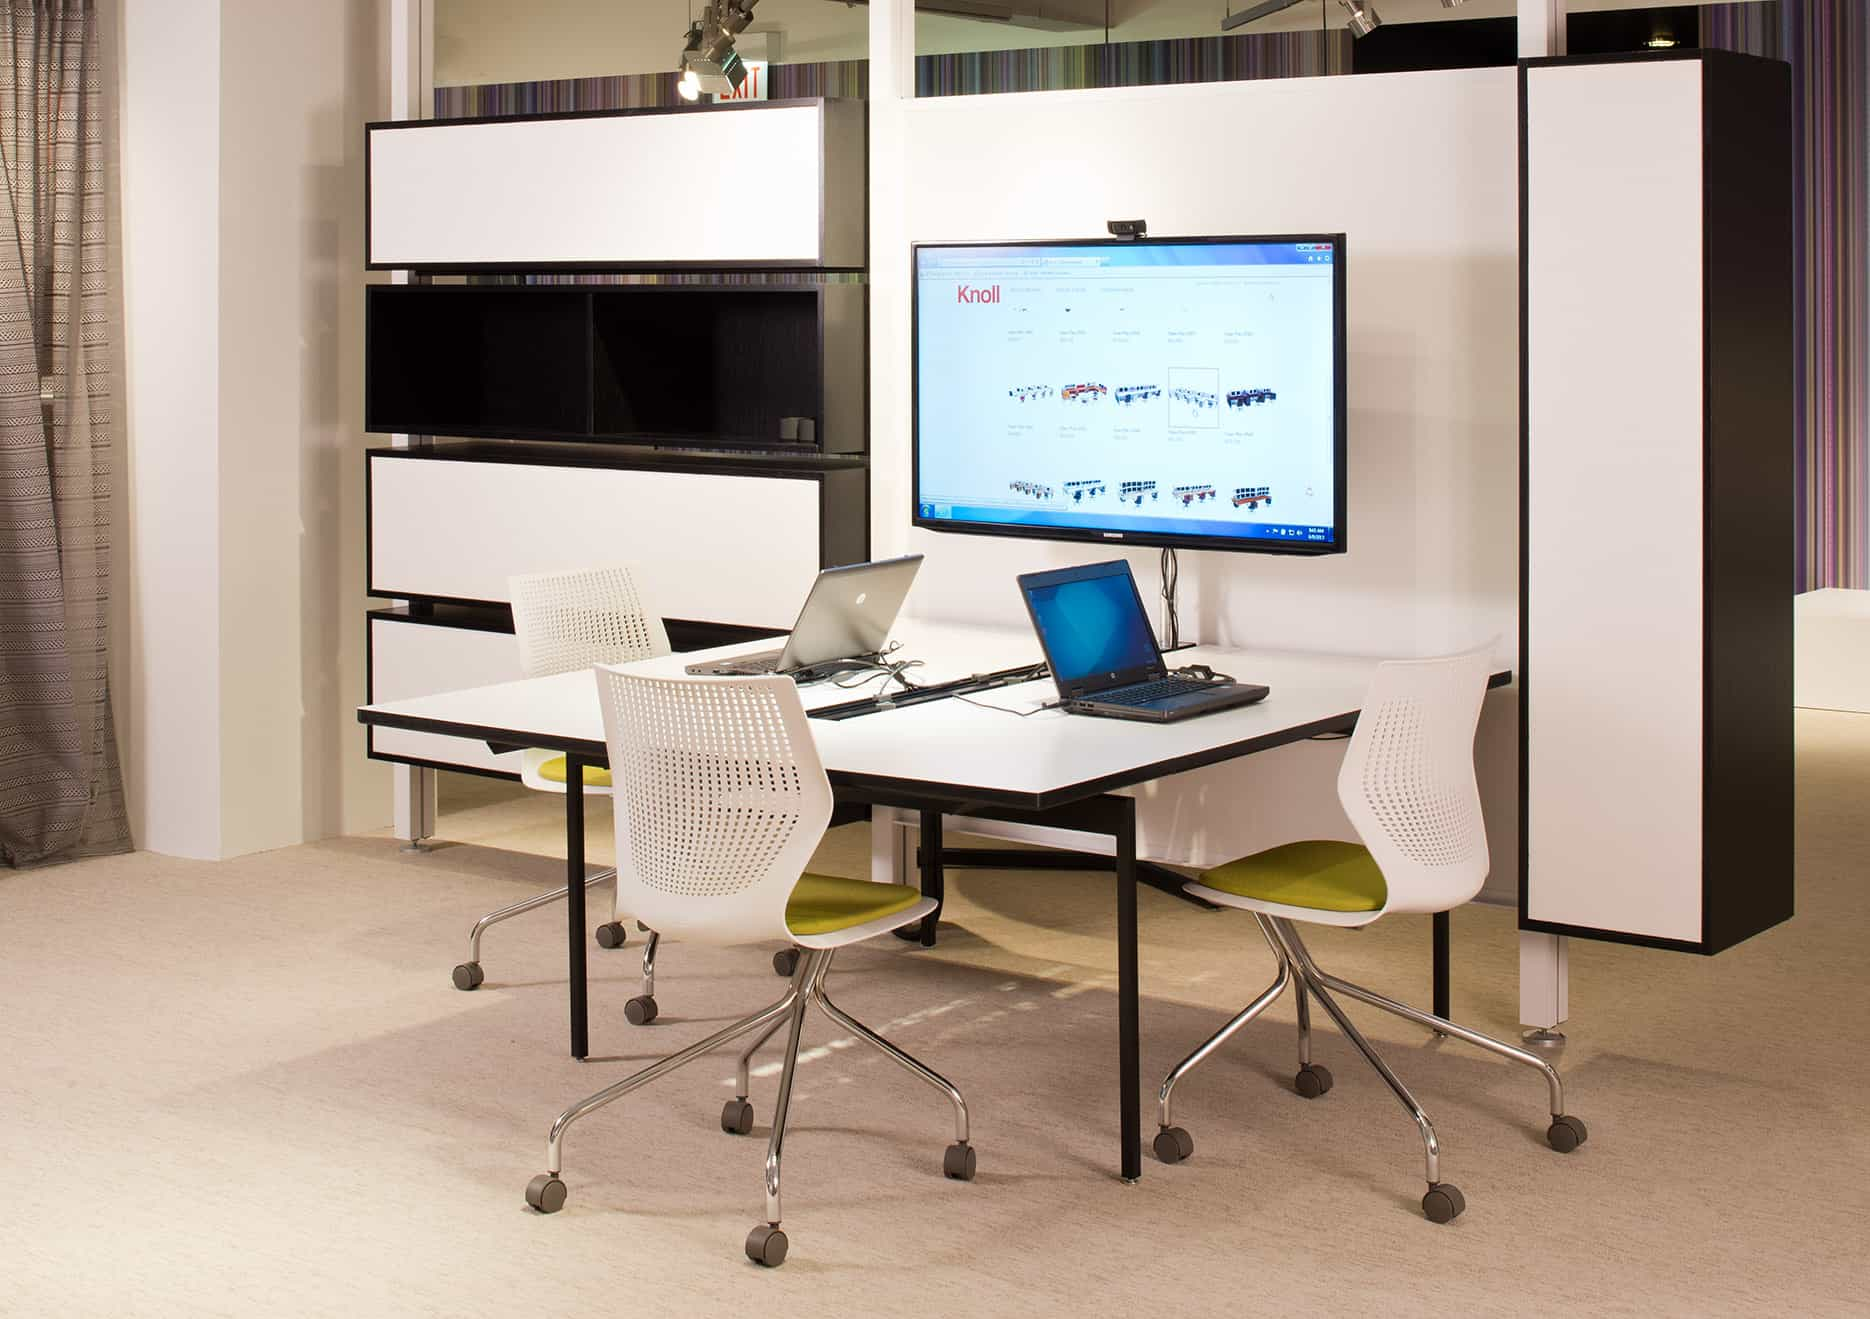 Picking the Right Office Furniture for Collaboration